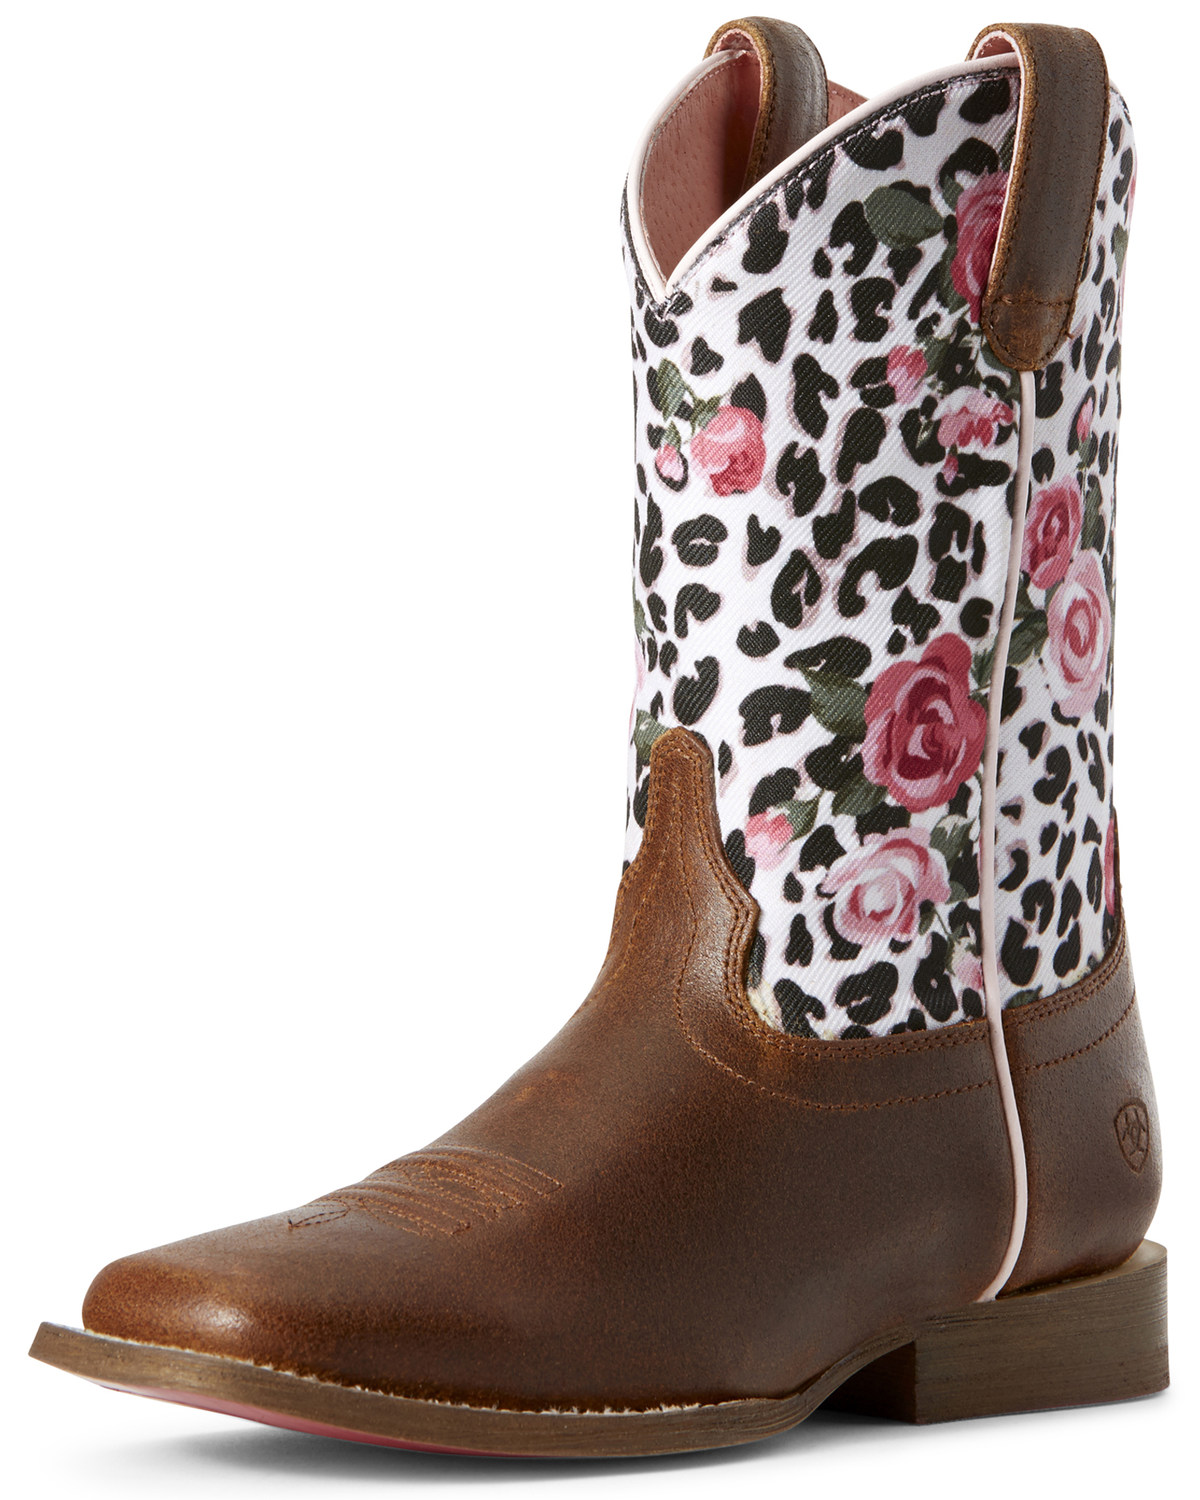 9220ed1cd01 Ariat Youth Girls' Gringa Western Boots - Wide Square Toe